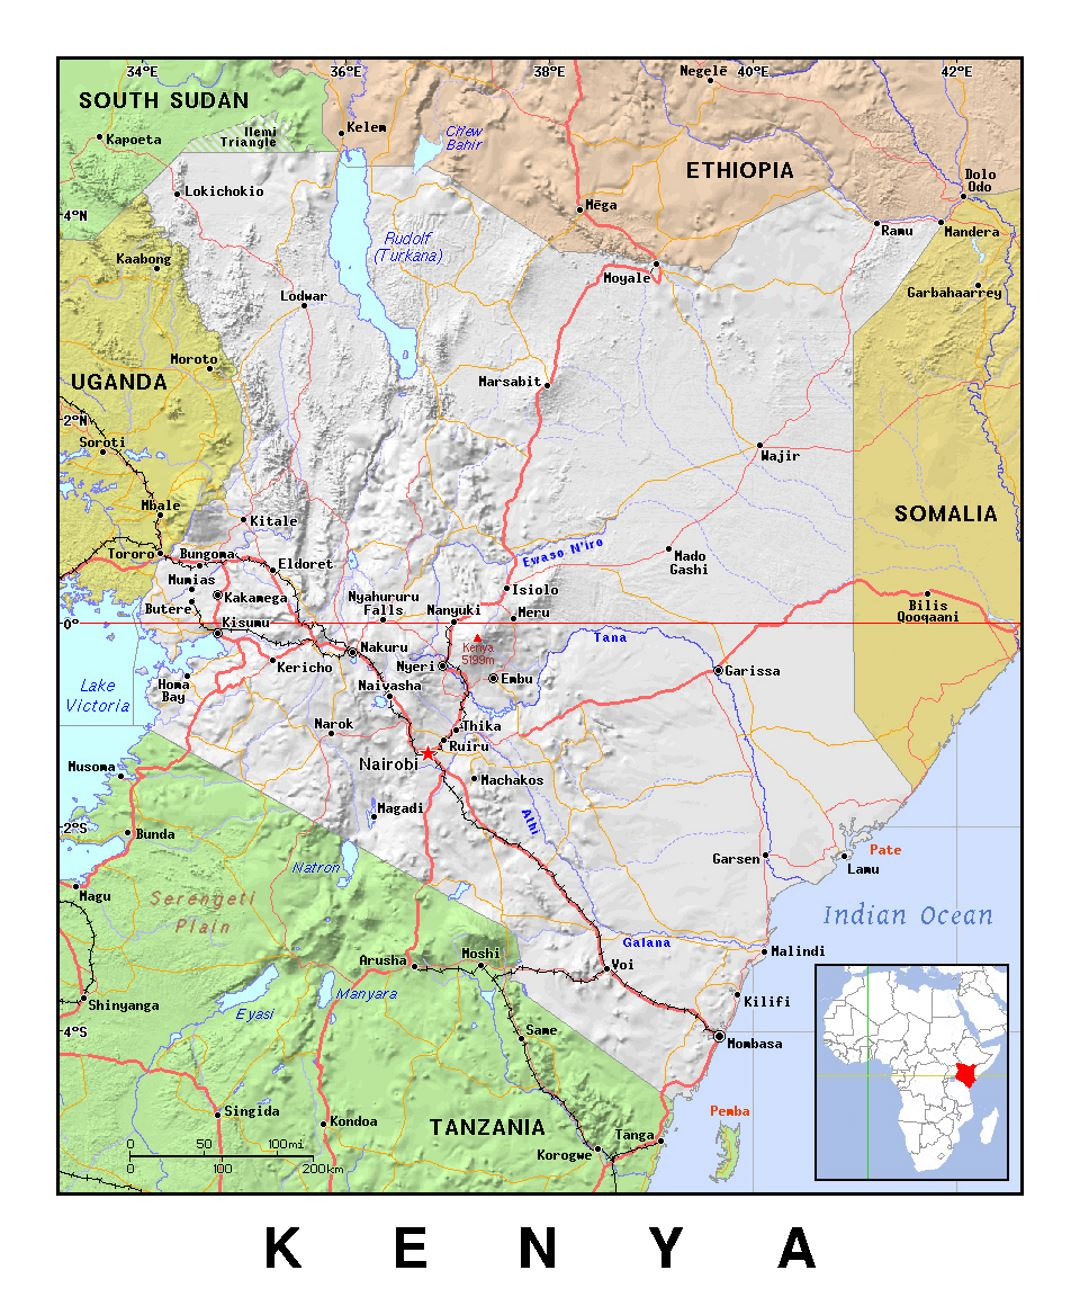 Detailed political map of Kenya with relief